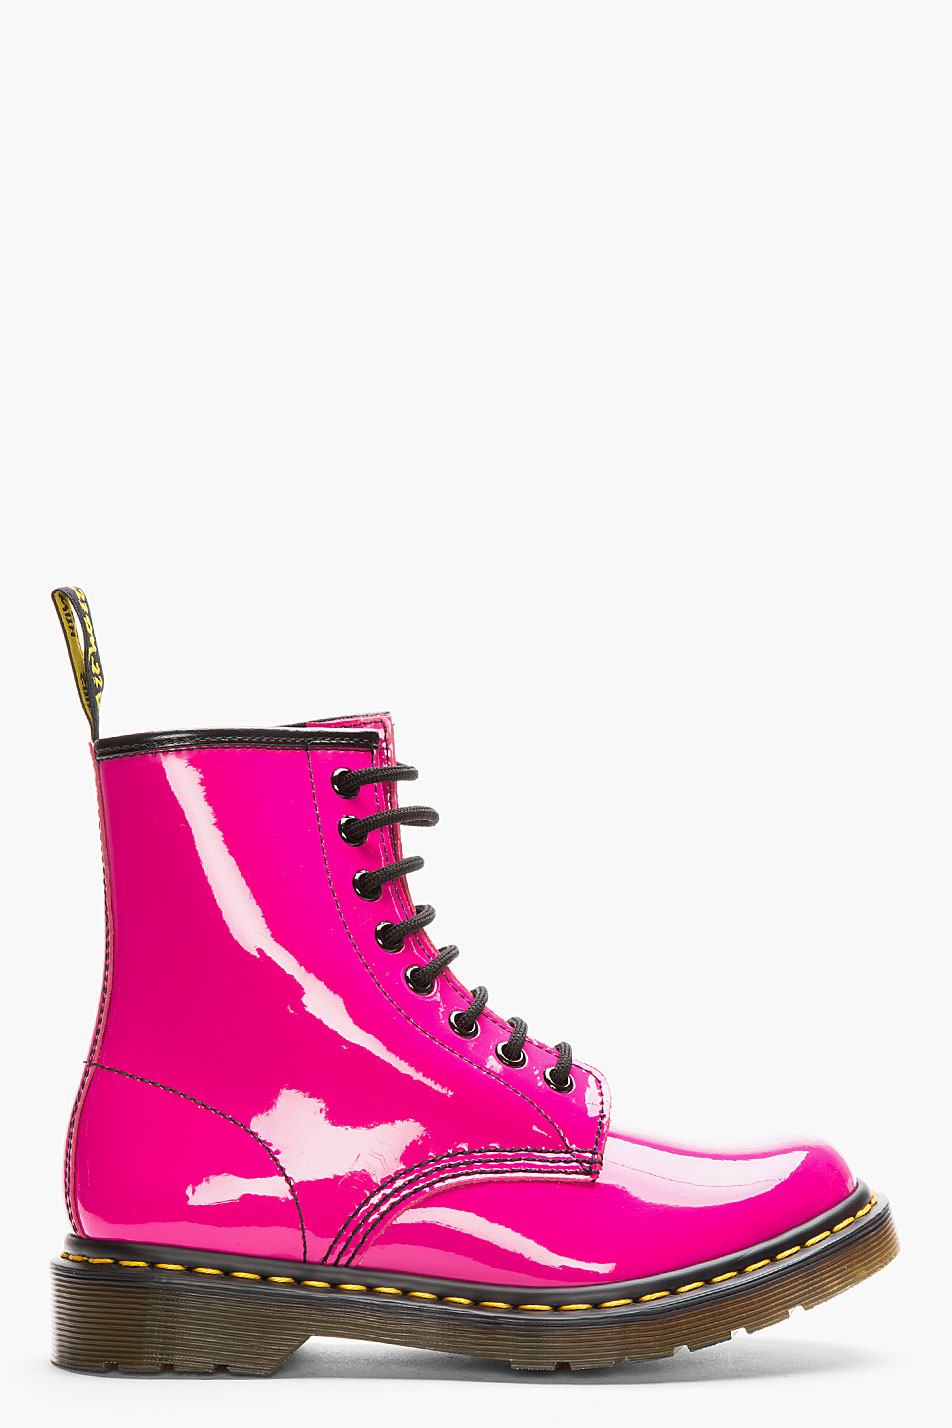 Lyst - Dr. Martens Hot Pink Patent Leather Cambridge Brush ...